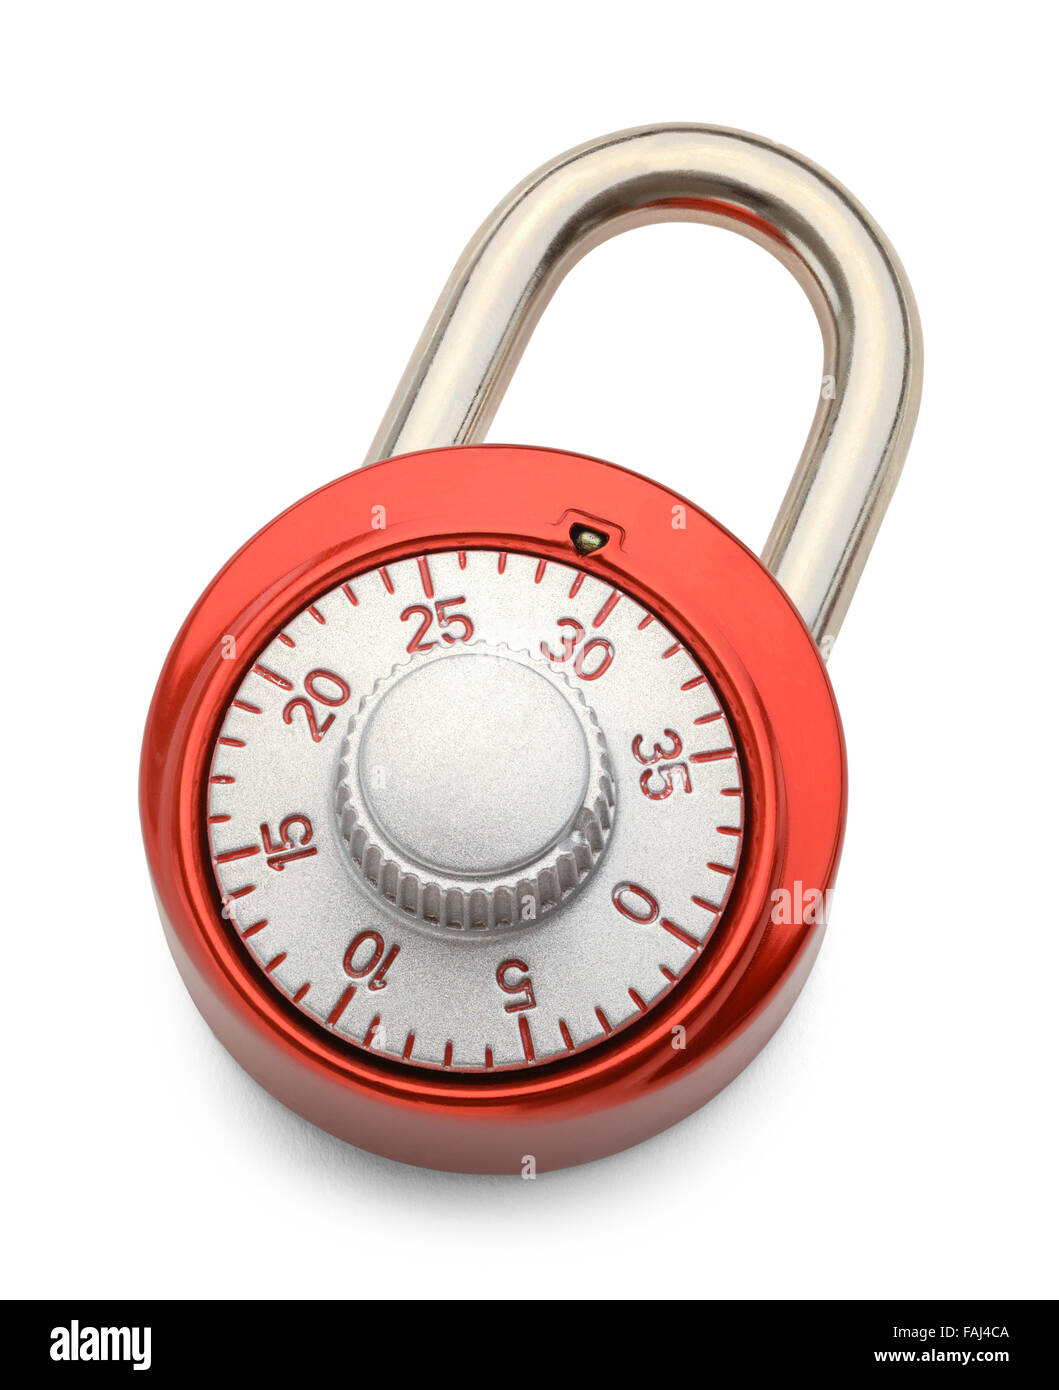 Red Combination Lock Isolated on a White Background. - Stock Image